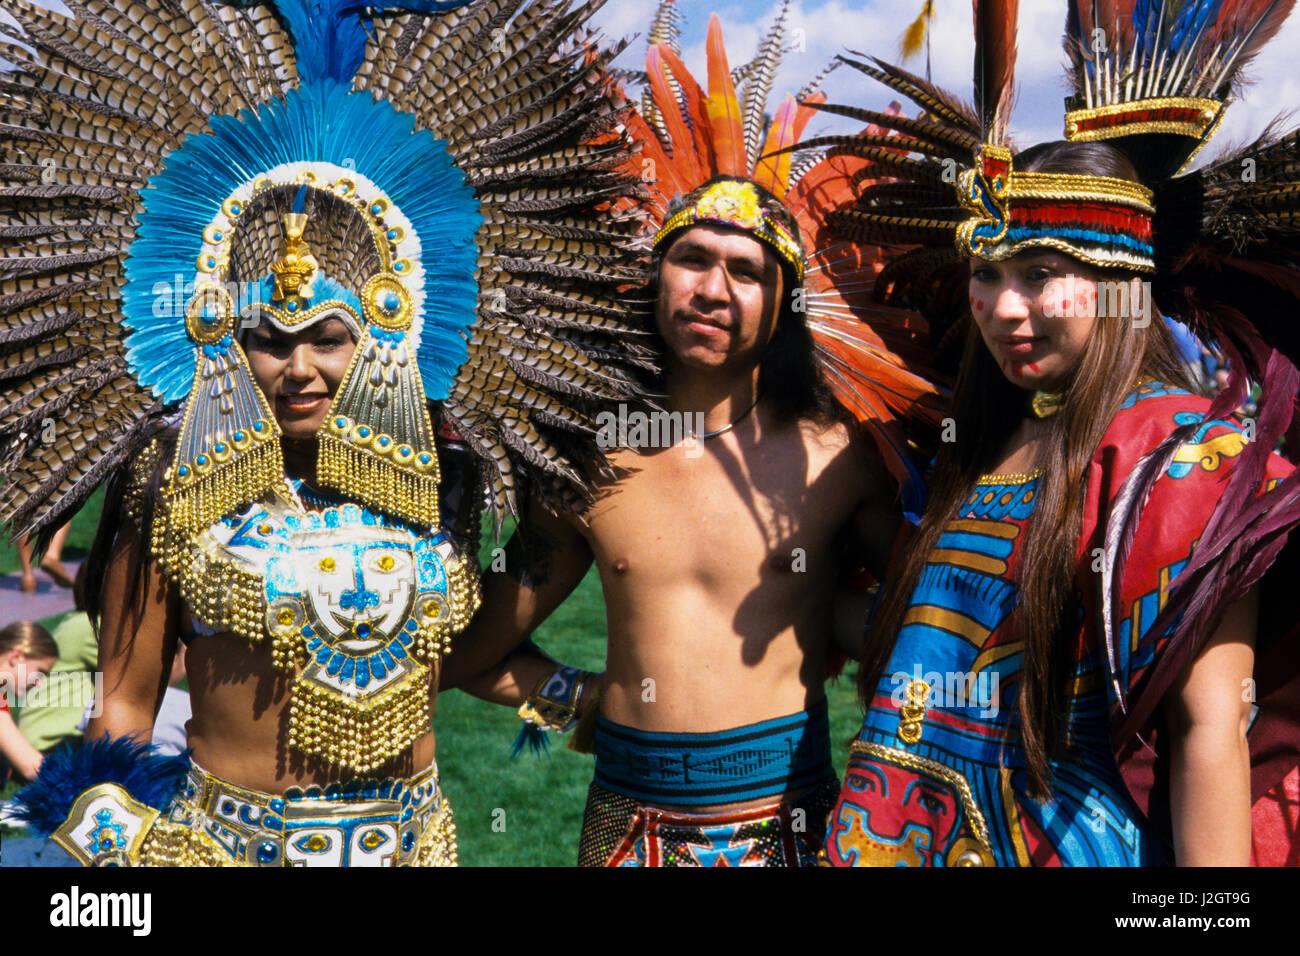 Two Aztec women and one man dressed in magnificent ... Indigenous Aztec Women